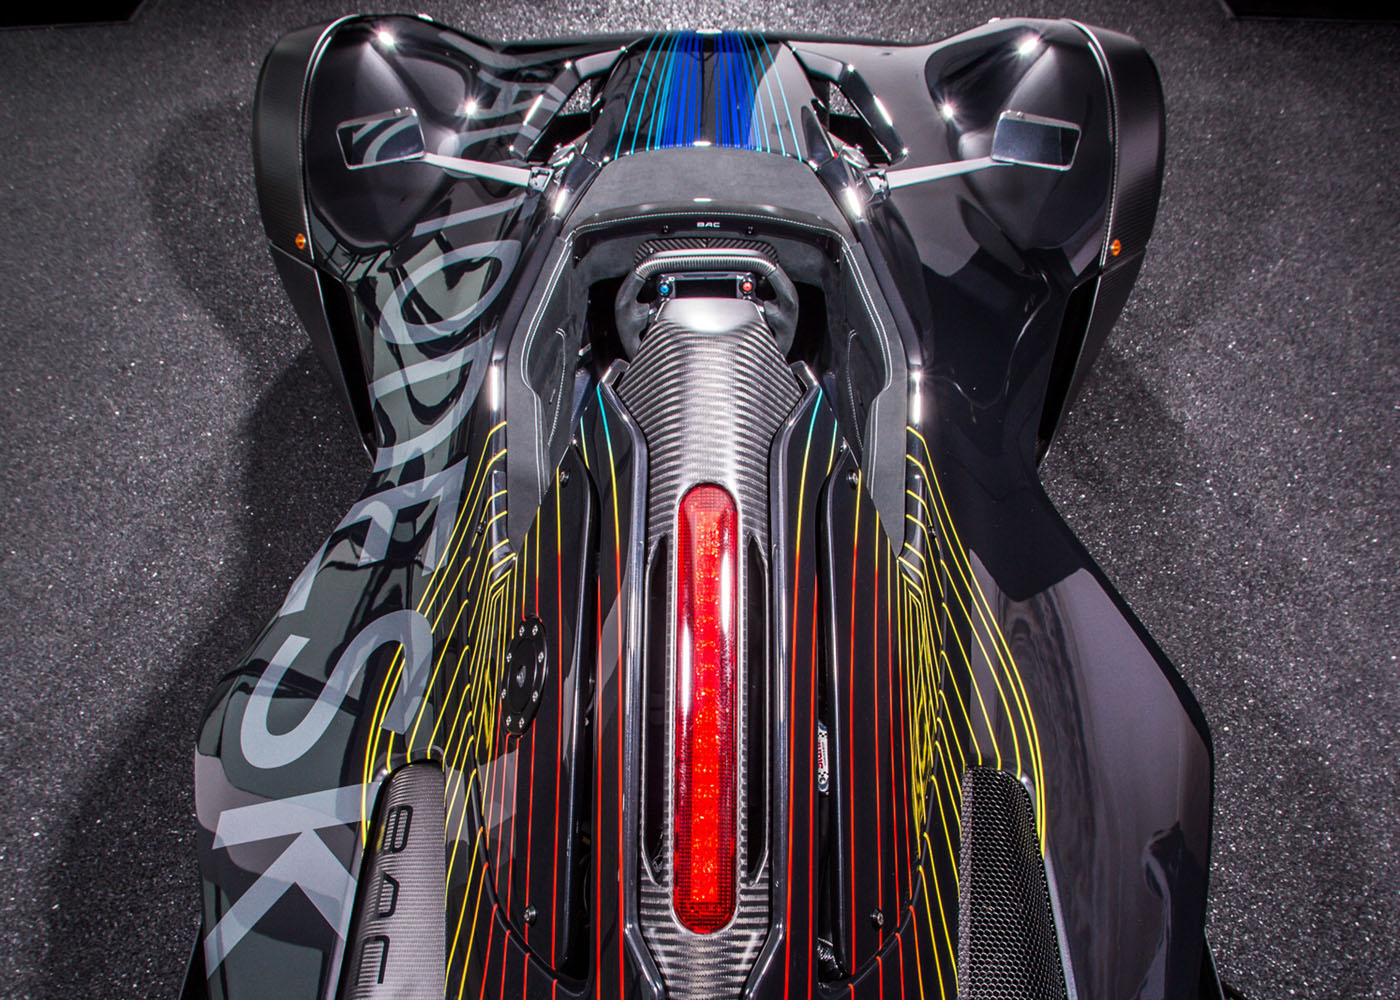 The result - The Autodesk Mono is now a mobile embodiment of cutting edge automotive design and a perfect exhibit of Autodesk's technologies. It makes its home at Autodesk's Birmingham Advanced manufacturing facility and makes appearances at global design and manufacturing events. image: courtesy Autodesk